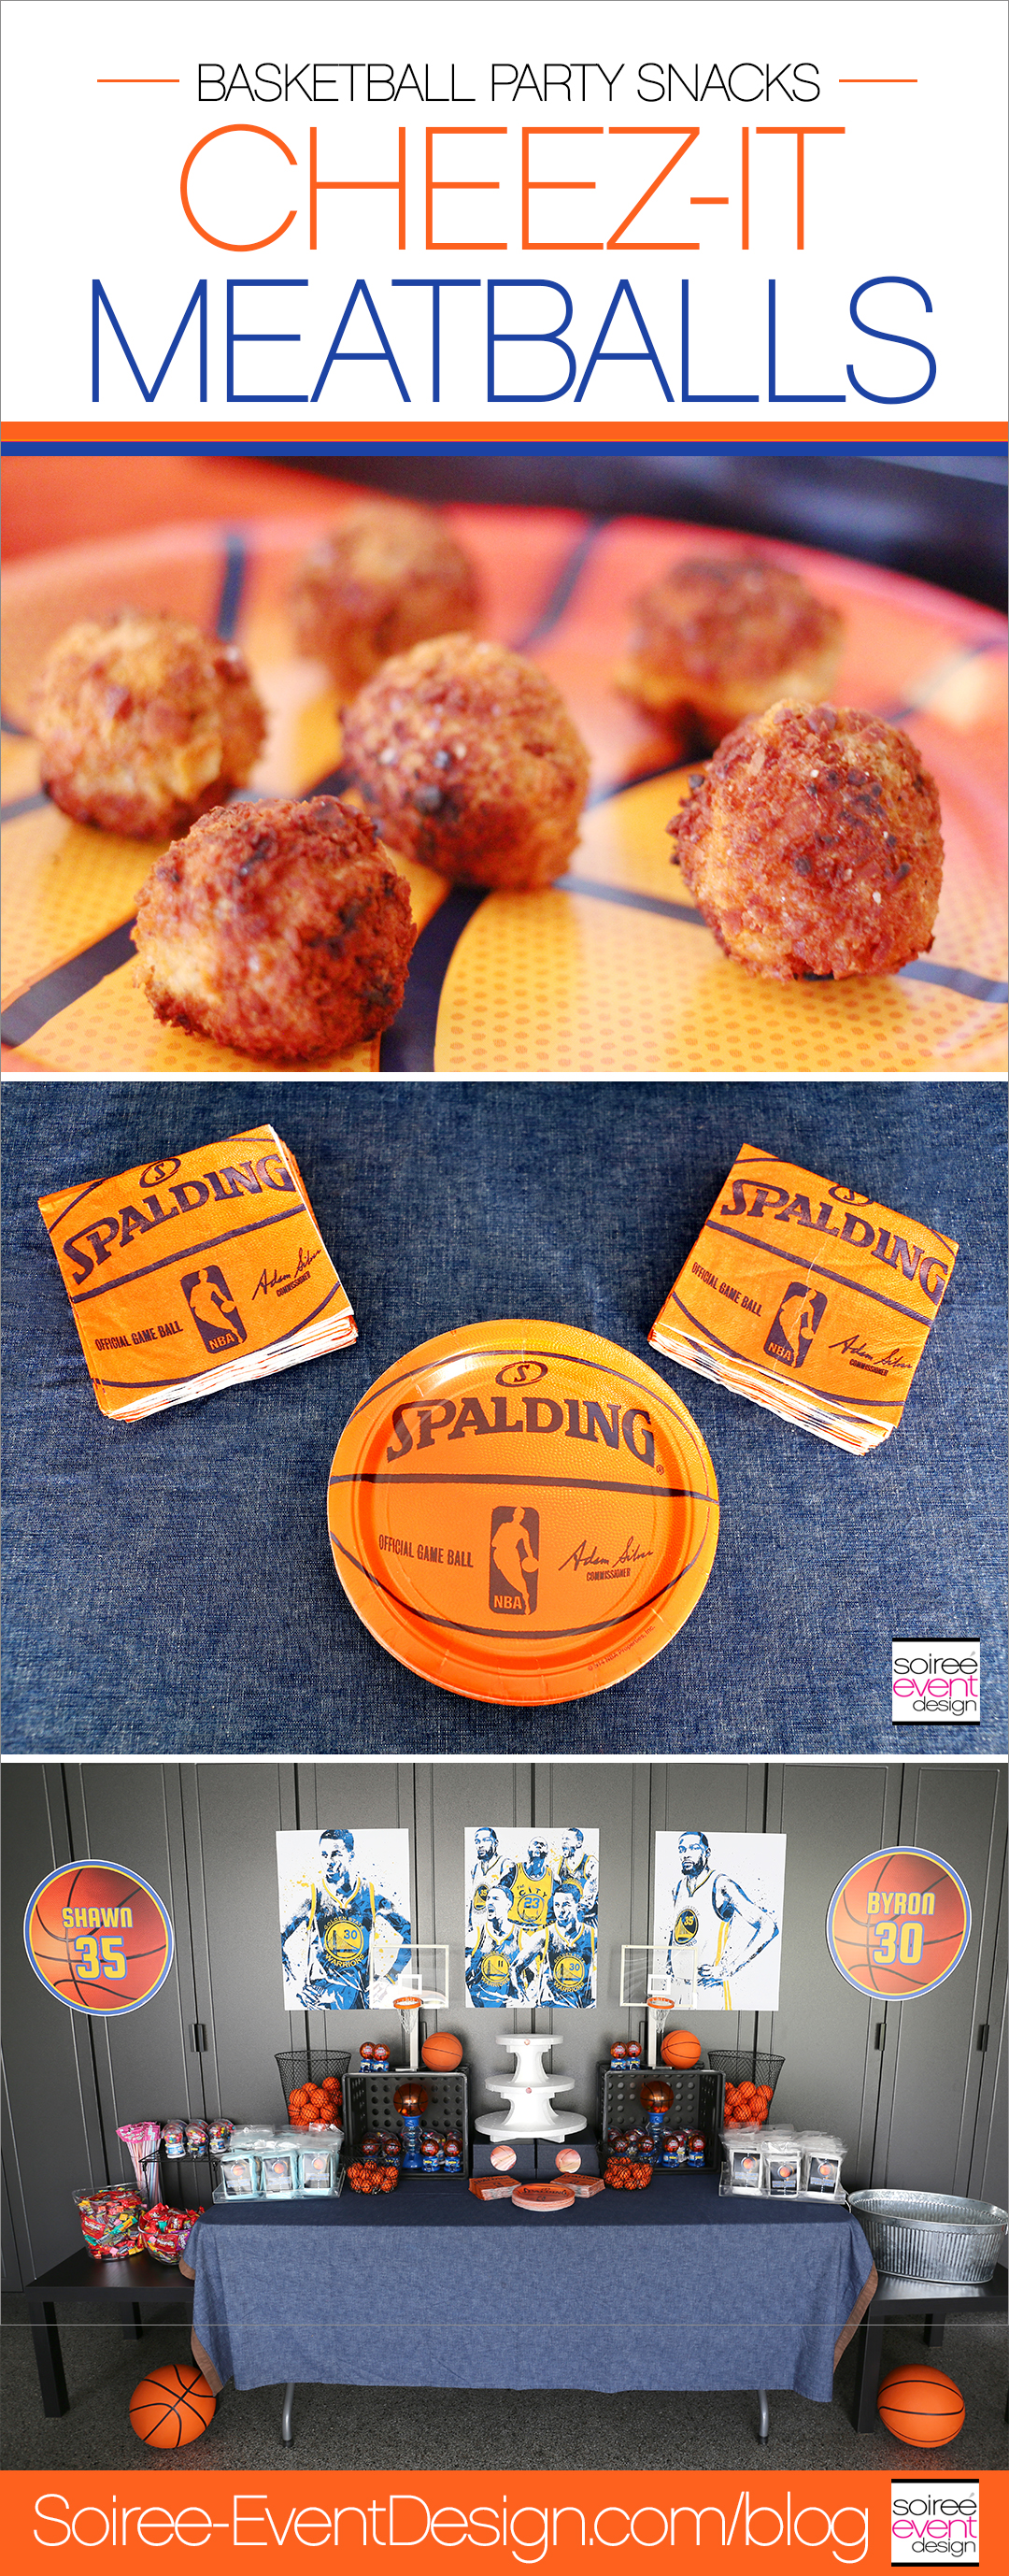 Basketball Party Snacks - Cheez-It Meatballs